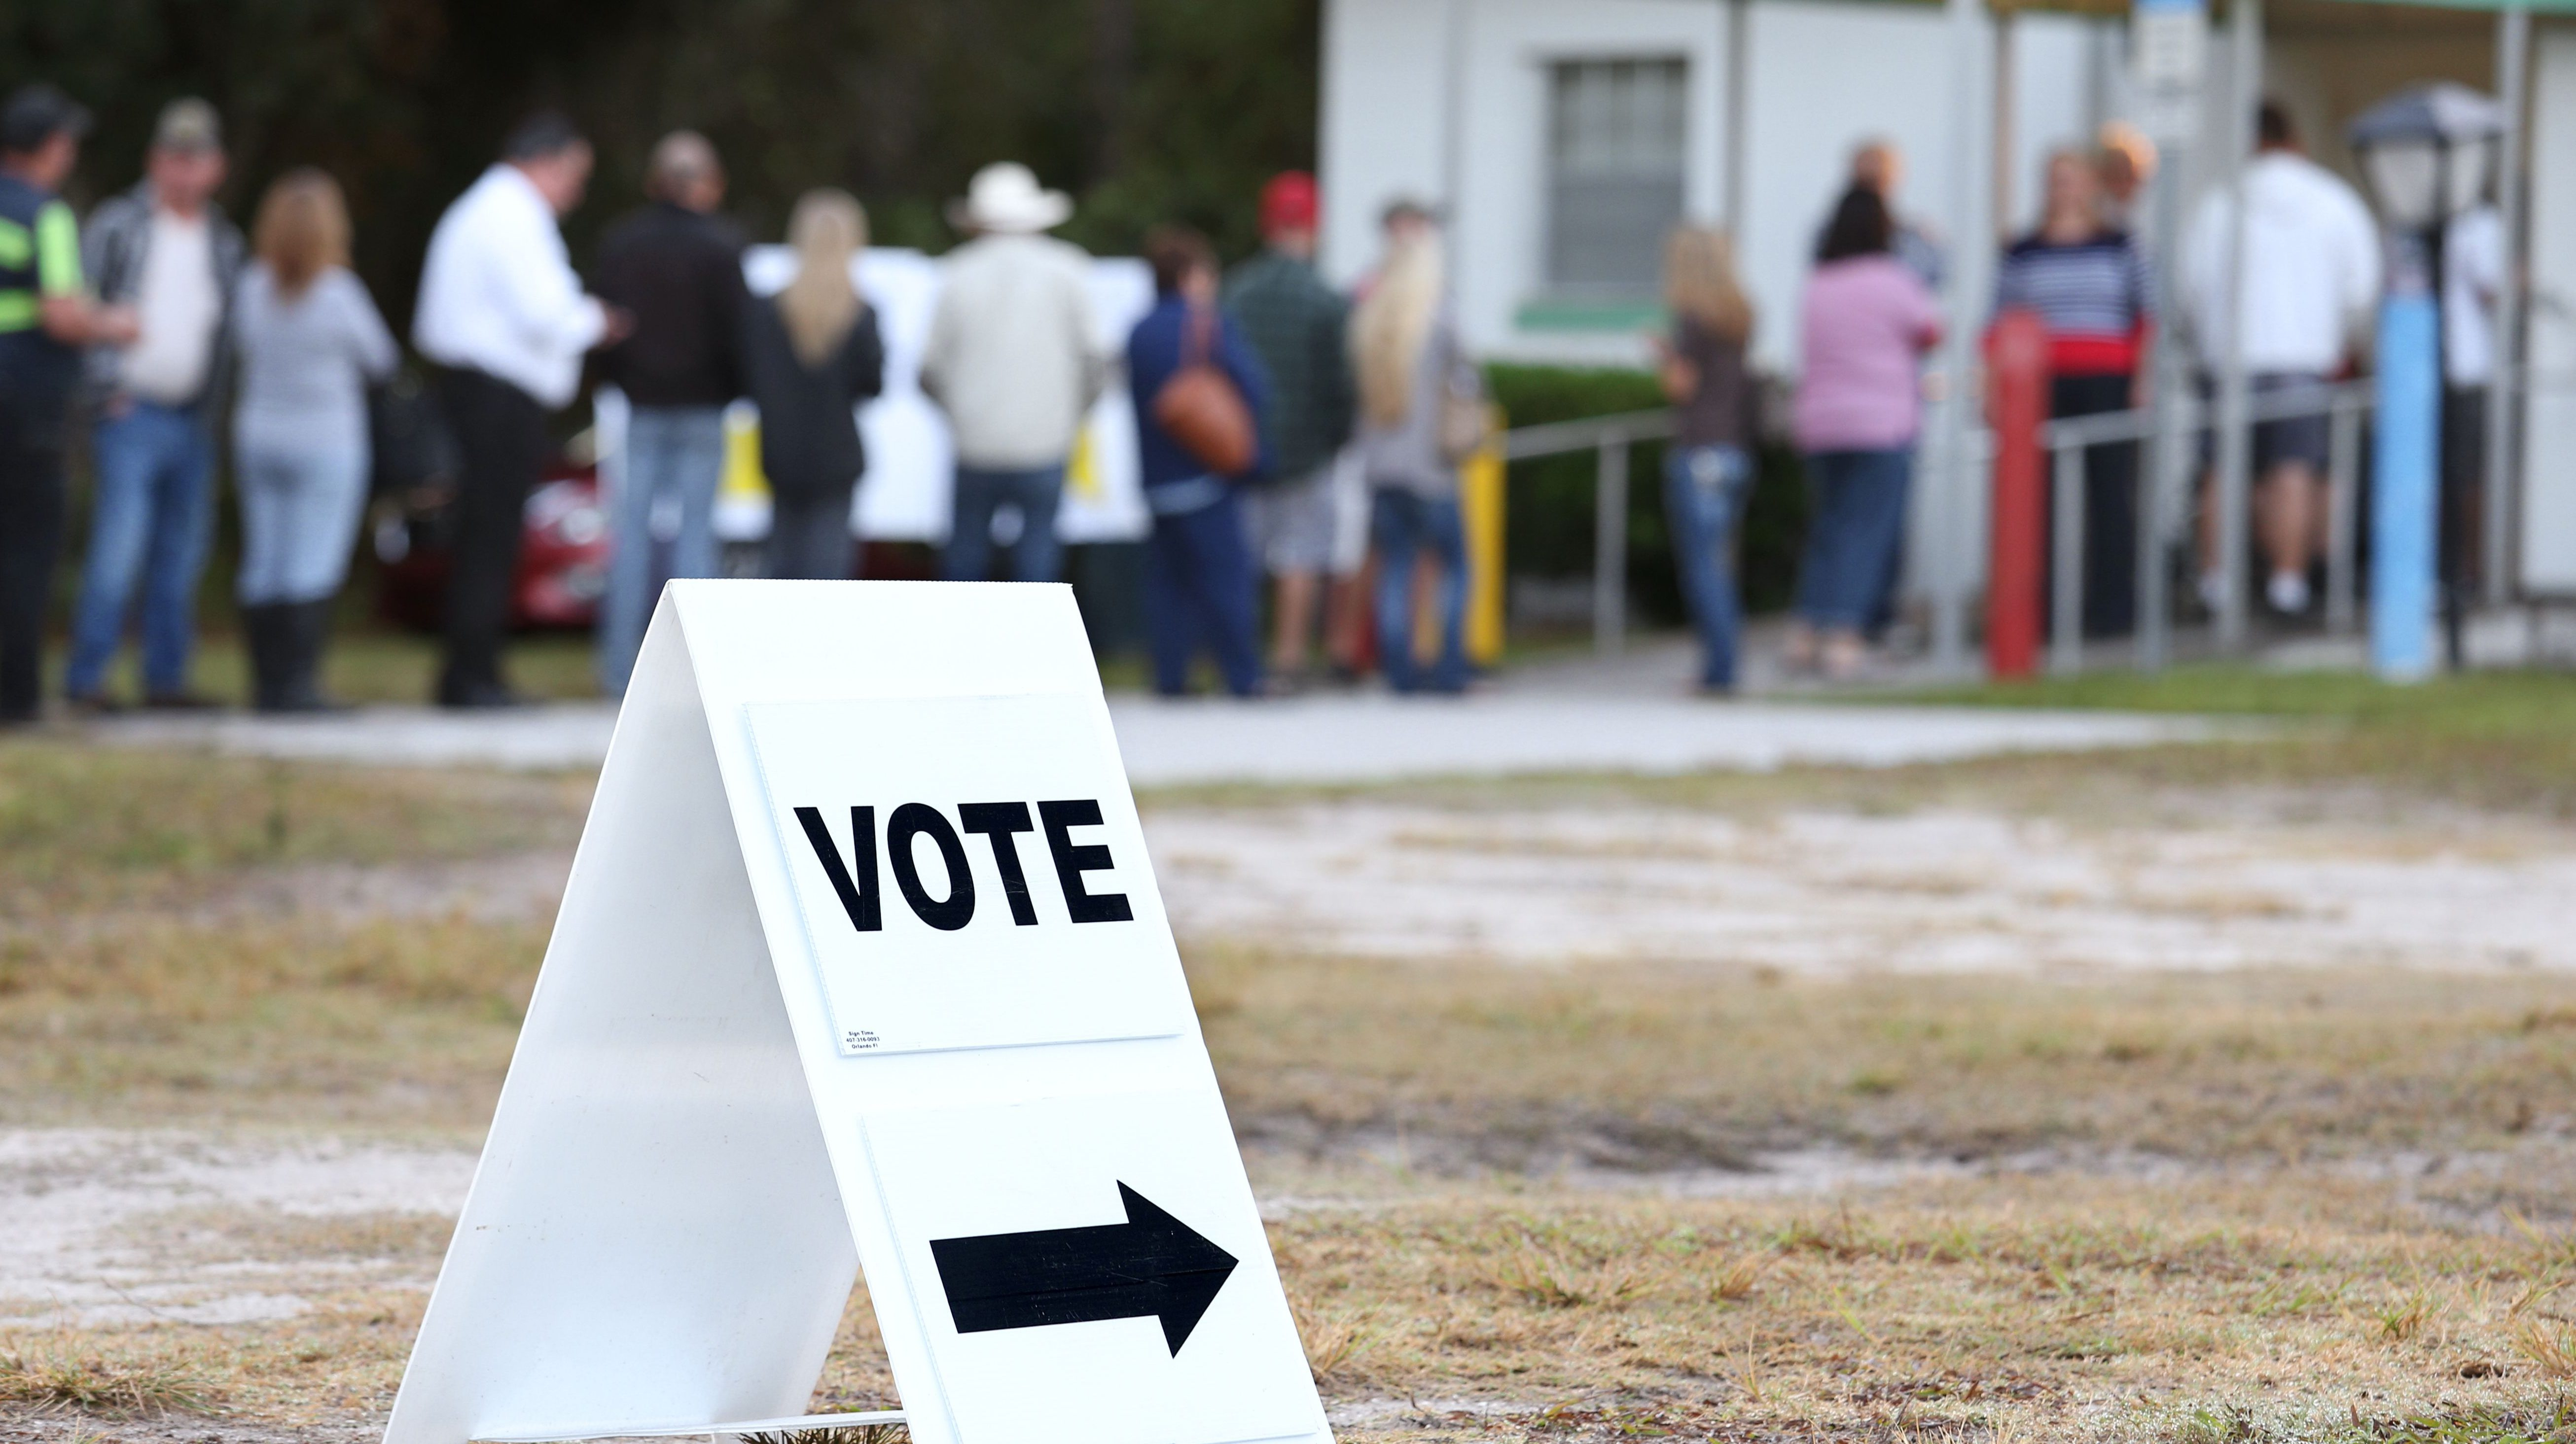 Voters wait in a queue to cast their ballots in the presidential election at a polling station in Christmas, Florida on November 8, 2016. (Getty)